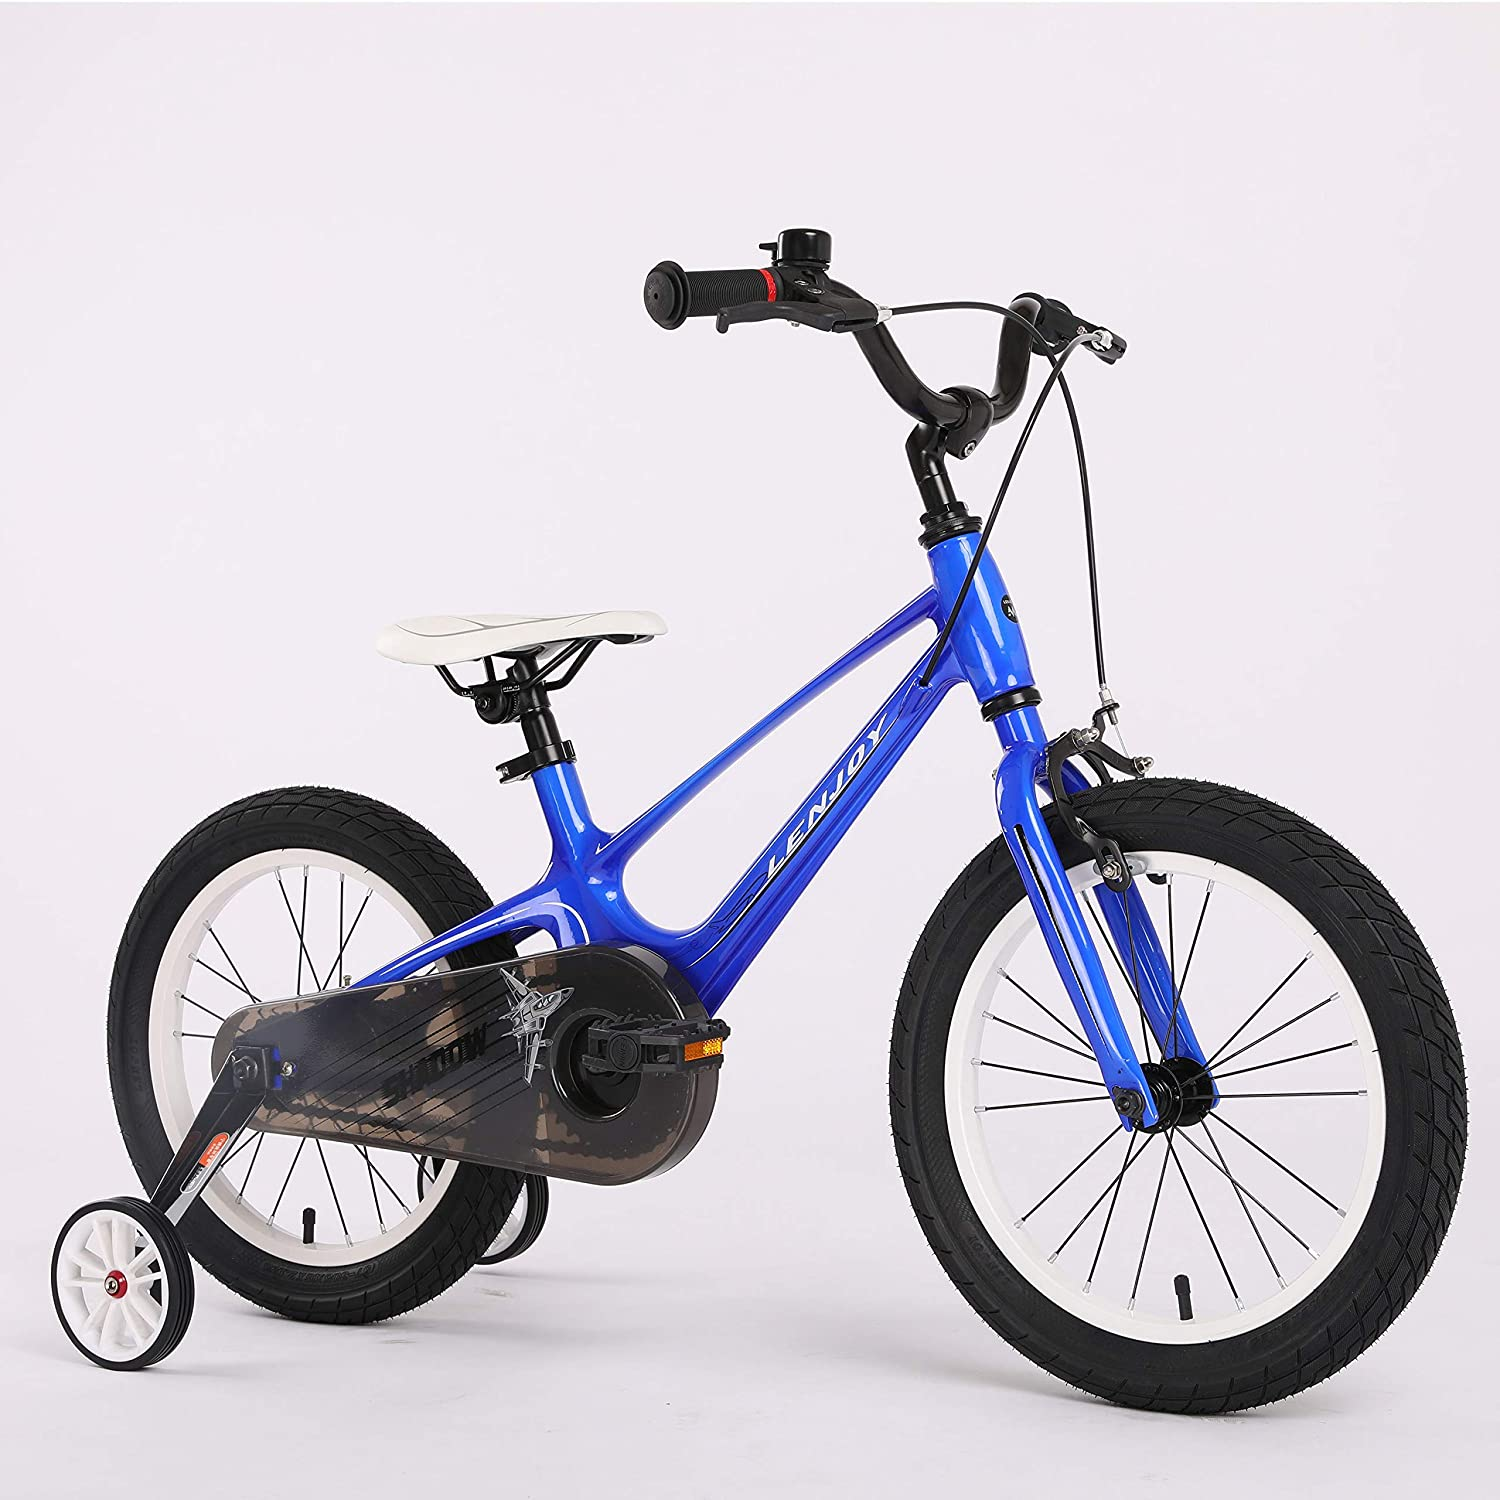 FOUJOY Kids Bike Magnesium Alloy Frame Children Bicycle 16 Inch with Training Wheels for 4-8 Years Old Children Blue